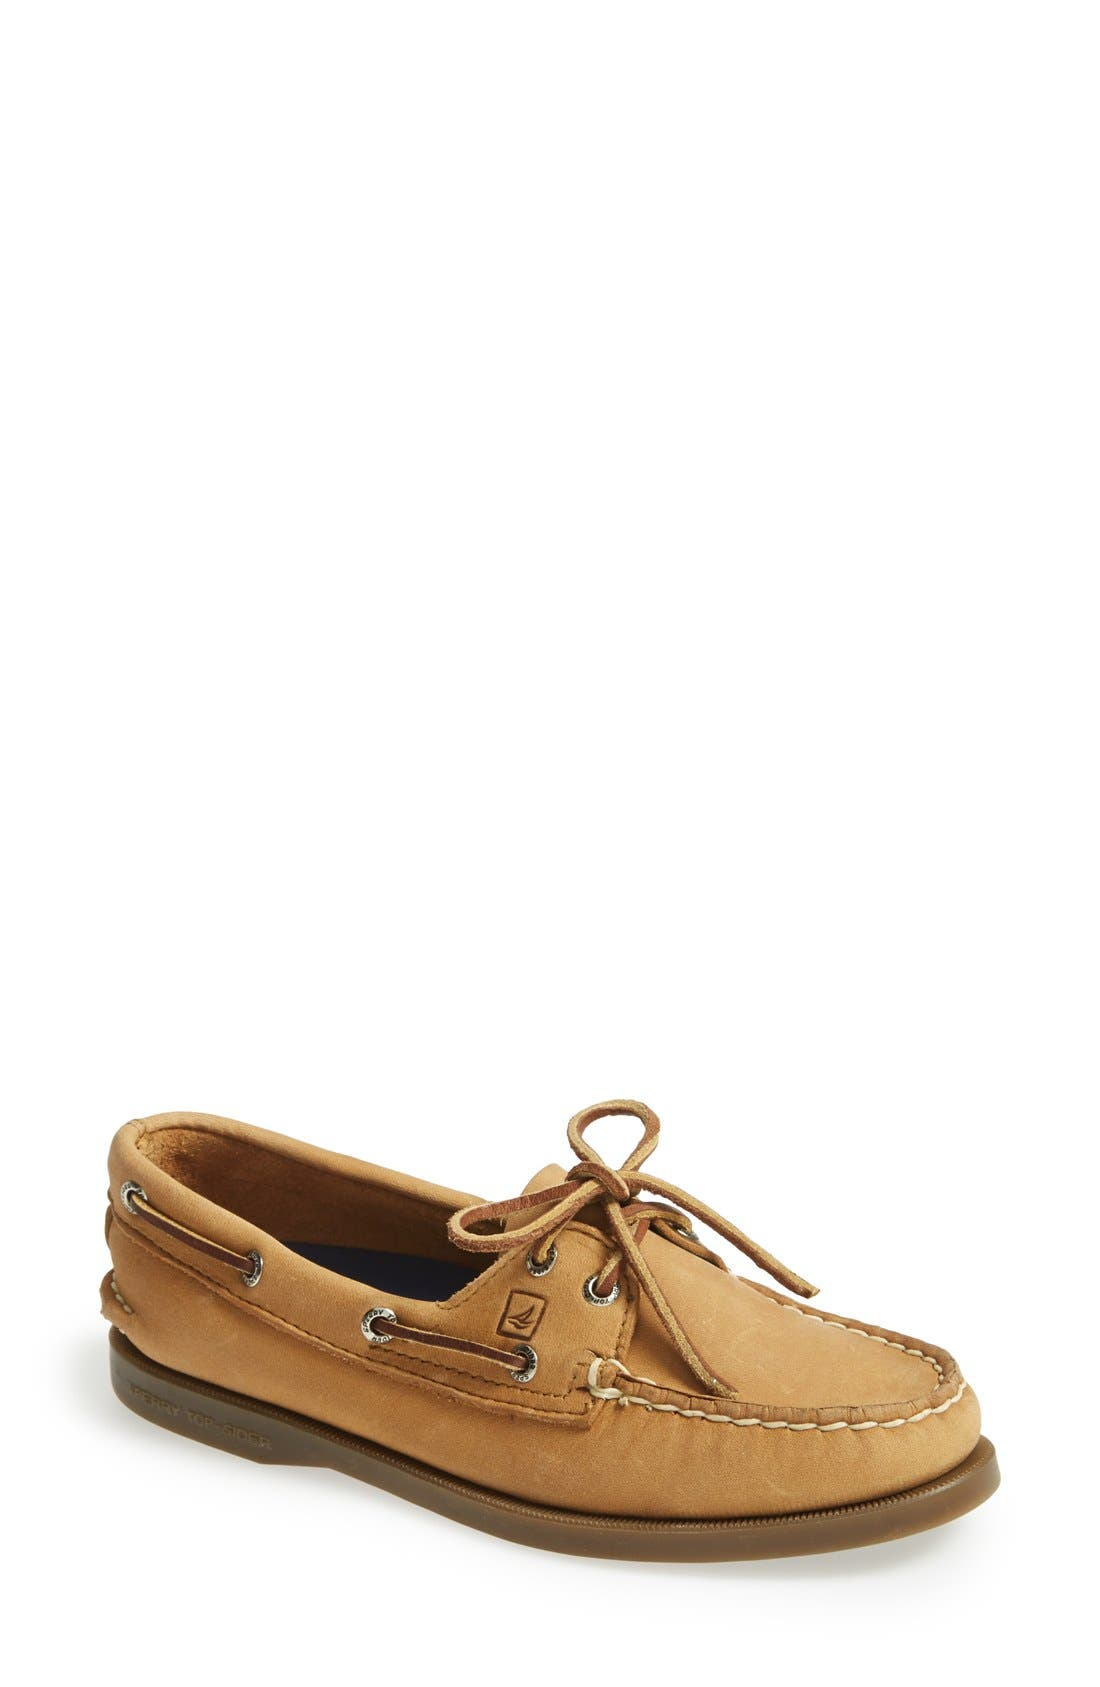 Alternate Image 1 Selected - Sperry 'Authentic Original' Woven Boat Shoe